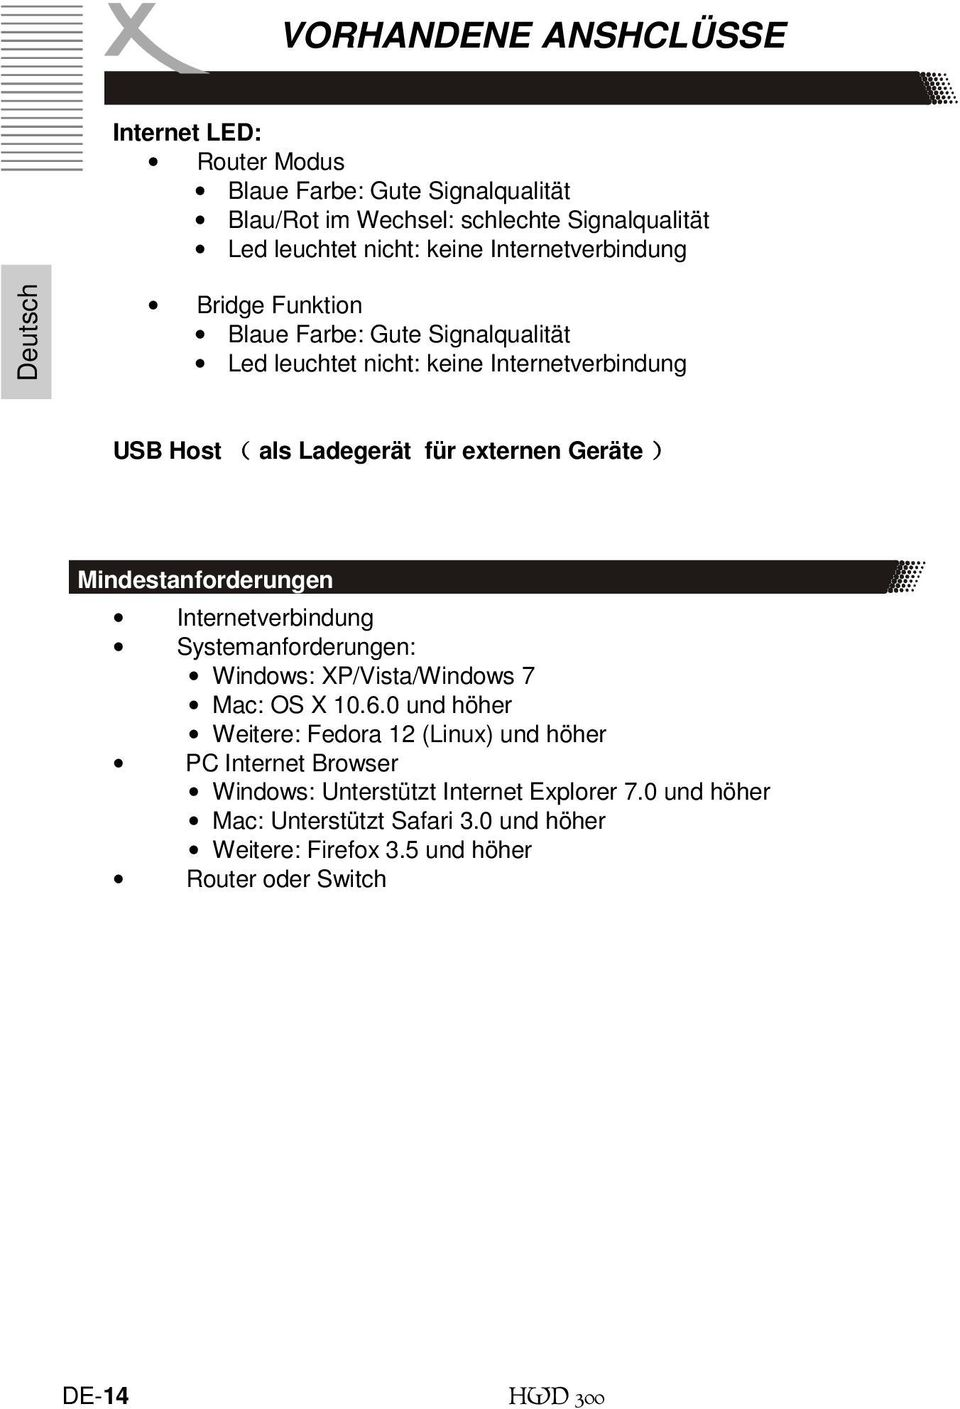 ) Mindestanforderungen Internetverbindung Systemanforderungen: Windows: XP/Vista/Windows 7 Mac: OS X 10.6.